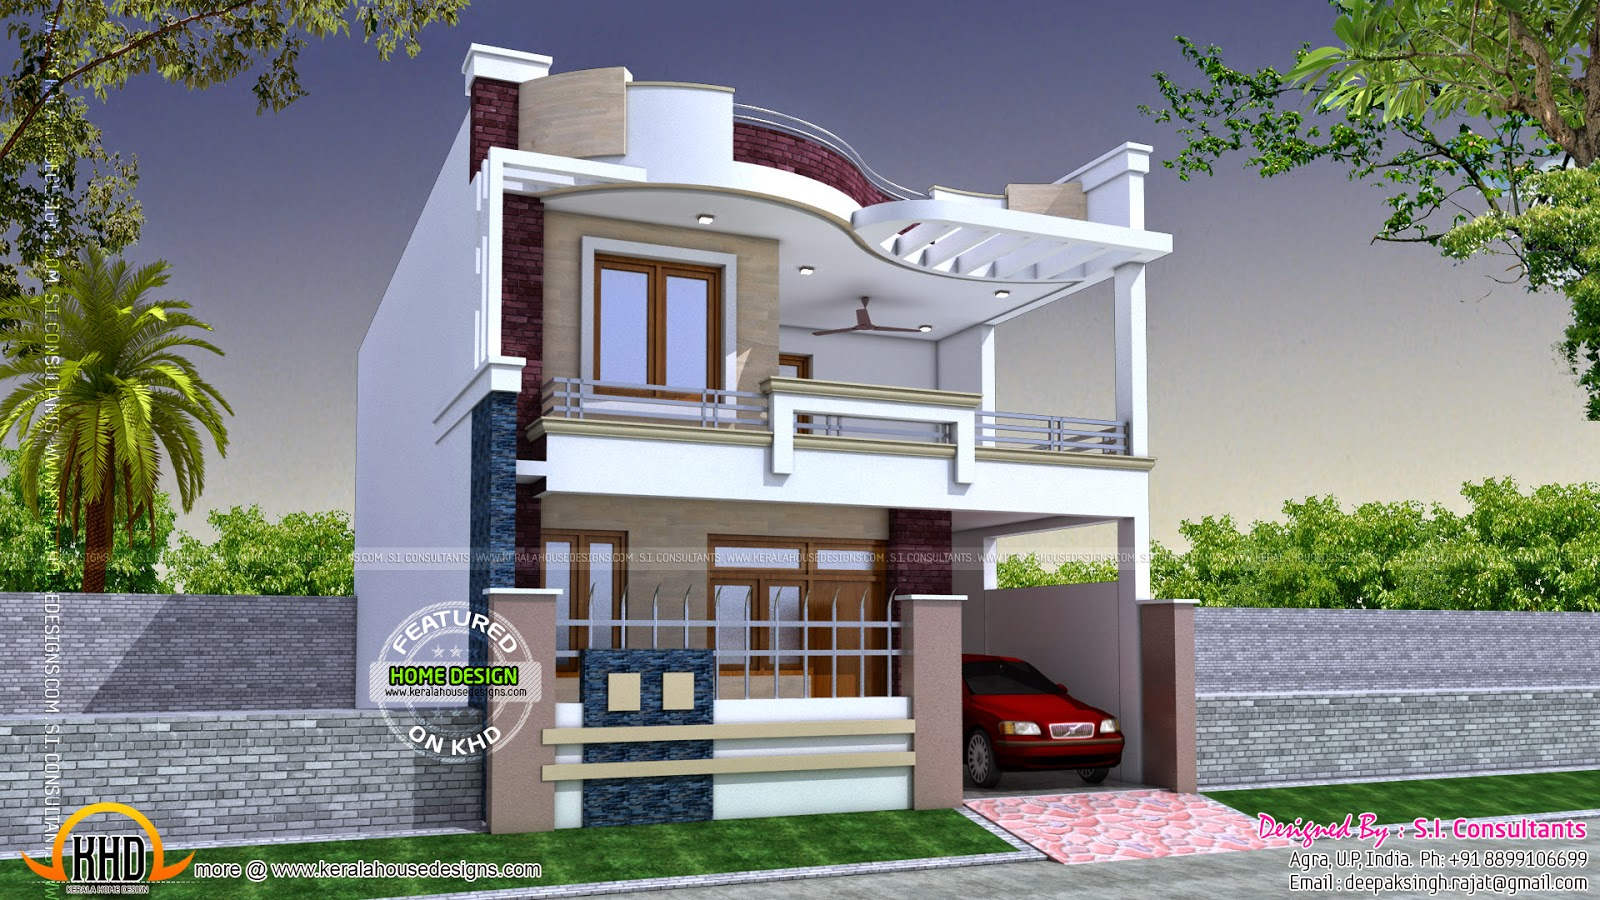 Modern indian home design kerala home design and floor plans for Indian small house designs photos